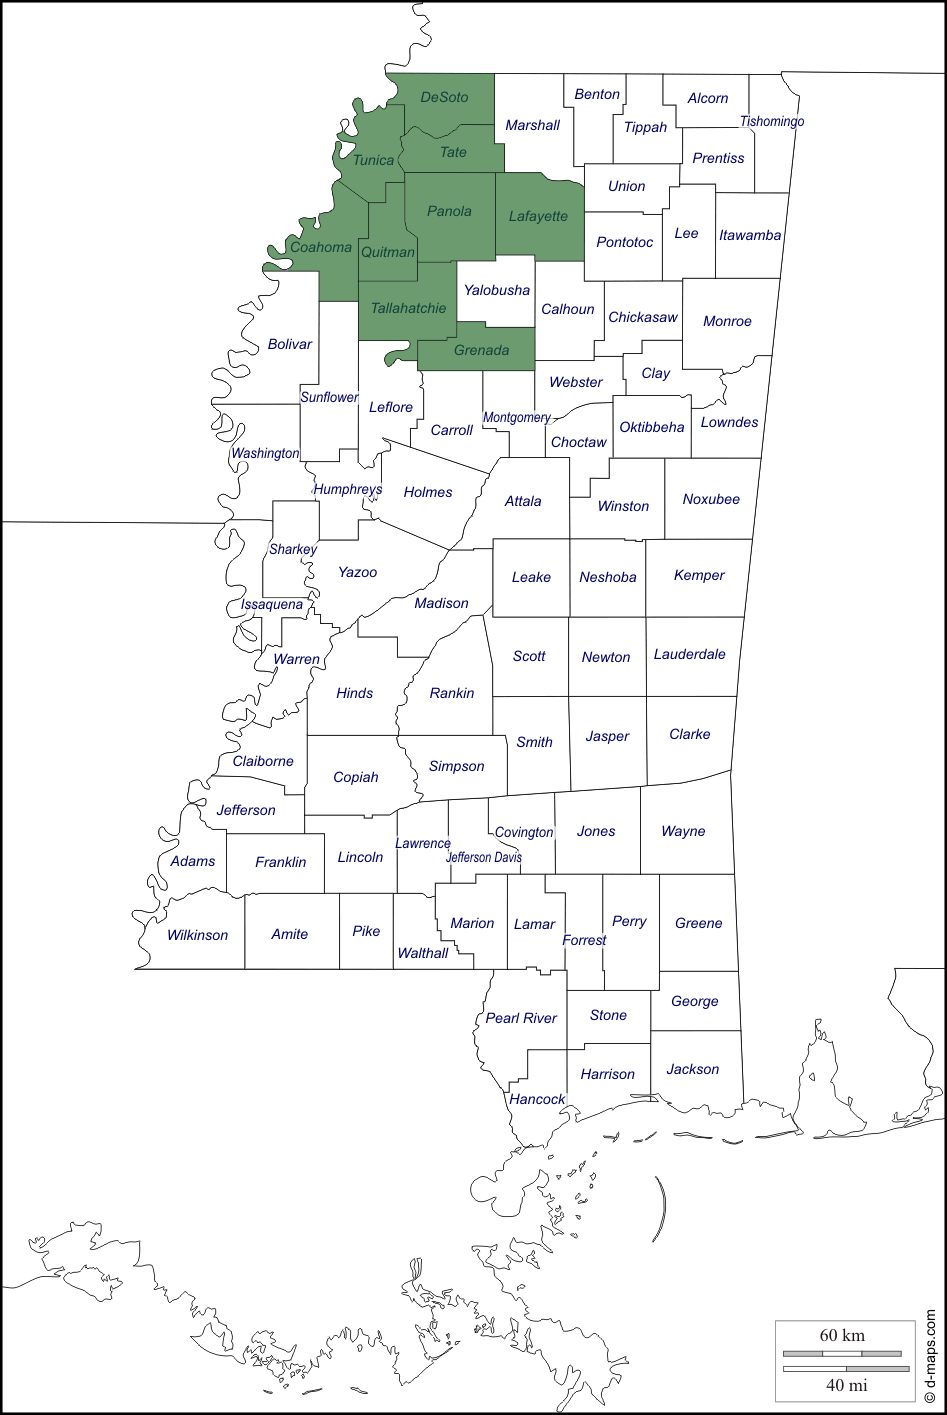 Mississippi Service Areas